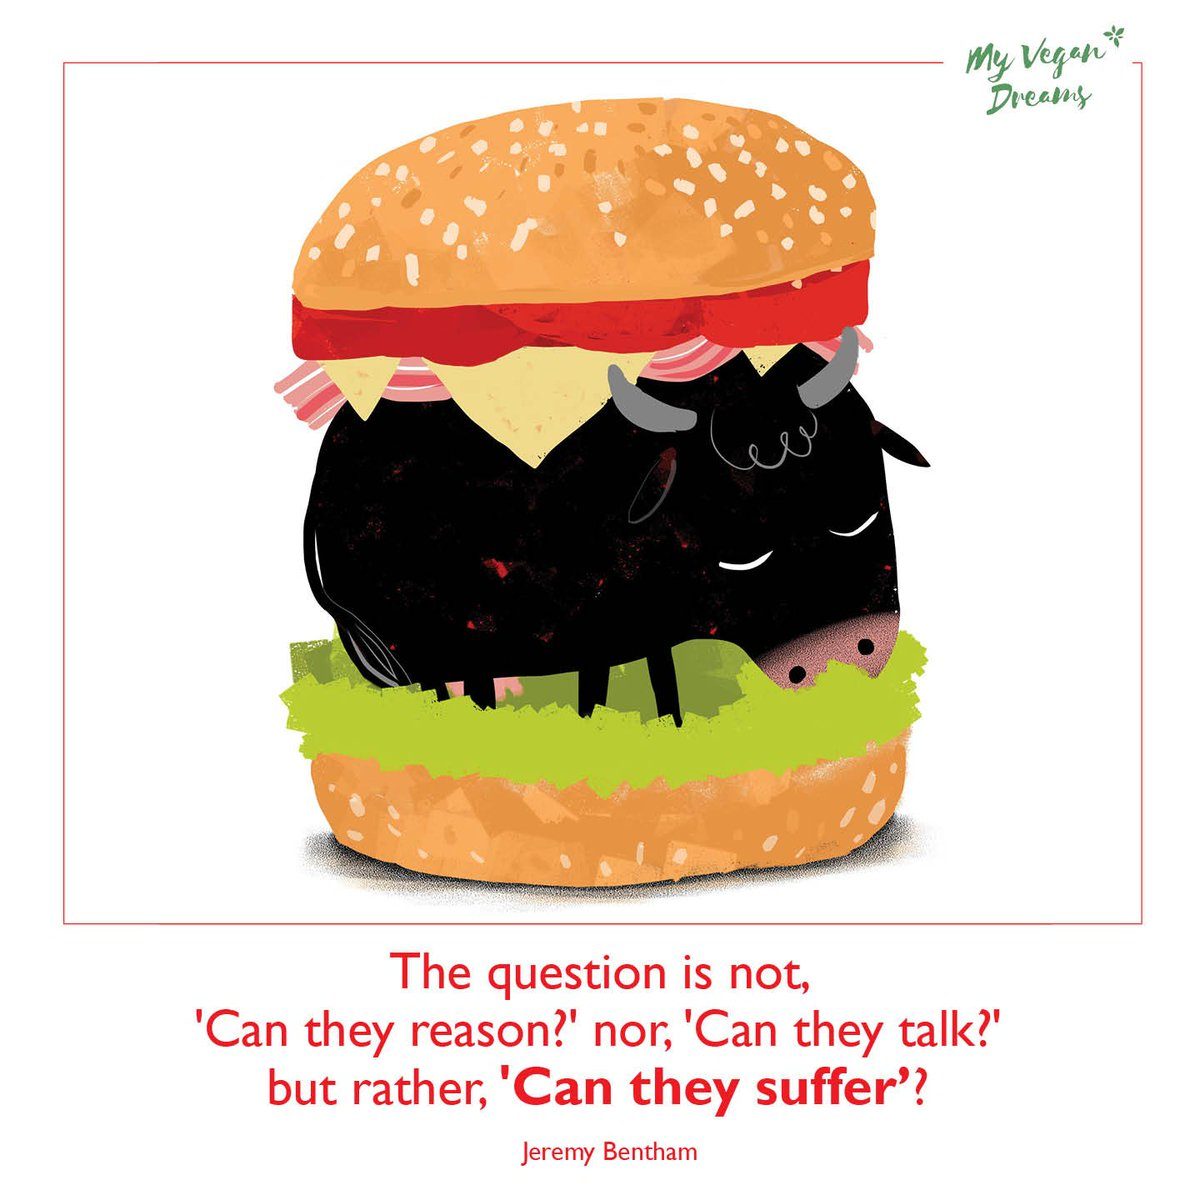 The question is not, &quot;Can they reason?&quot; nor, &quot;Can they talk?&quot; but rather, &quot;Can they suffer?&quot; #vegan #govegan<br>http://pic.twitter.com/ddpjqqlTre